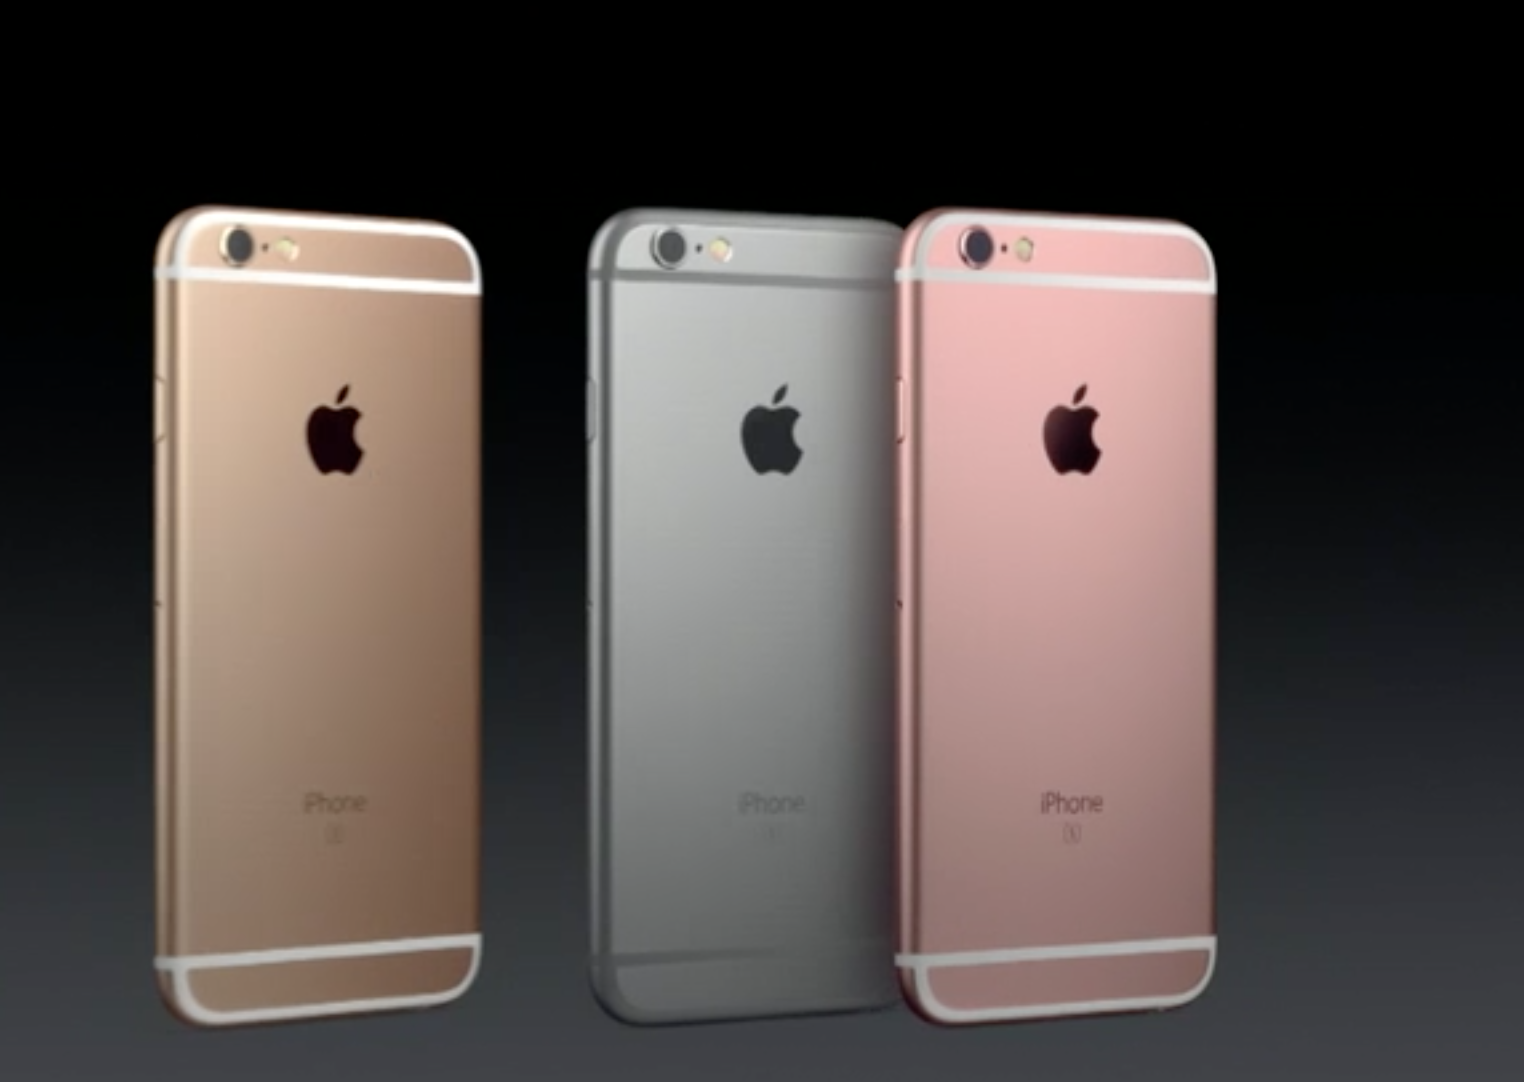 iphone 6s features the apple iphone 6s amp iphone 6s plus 12mp cameras 11479